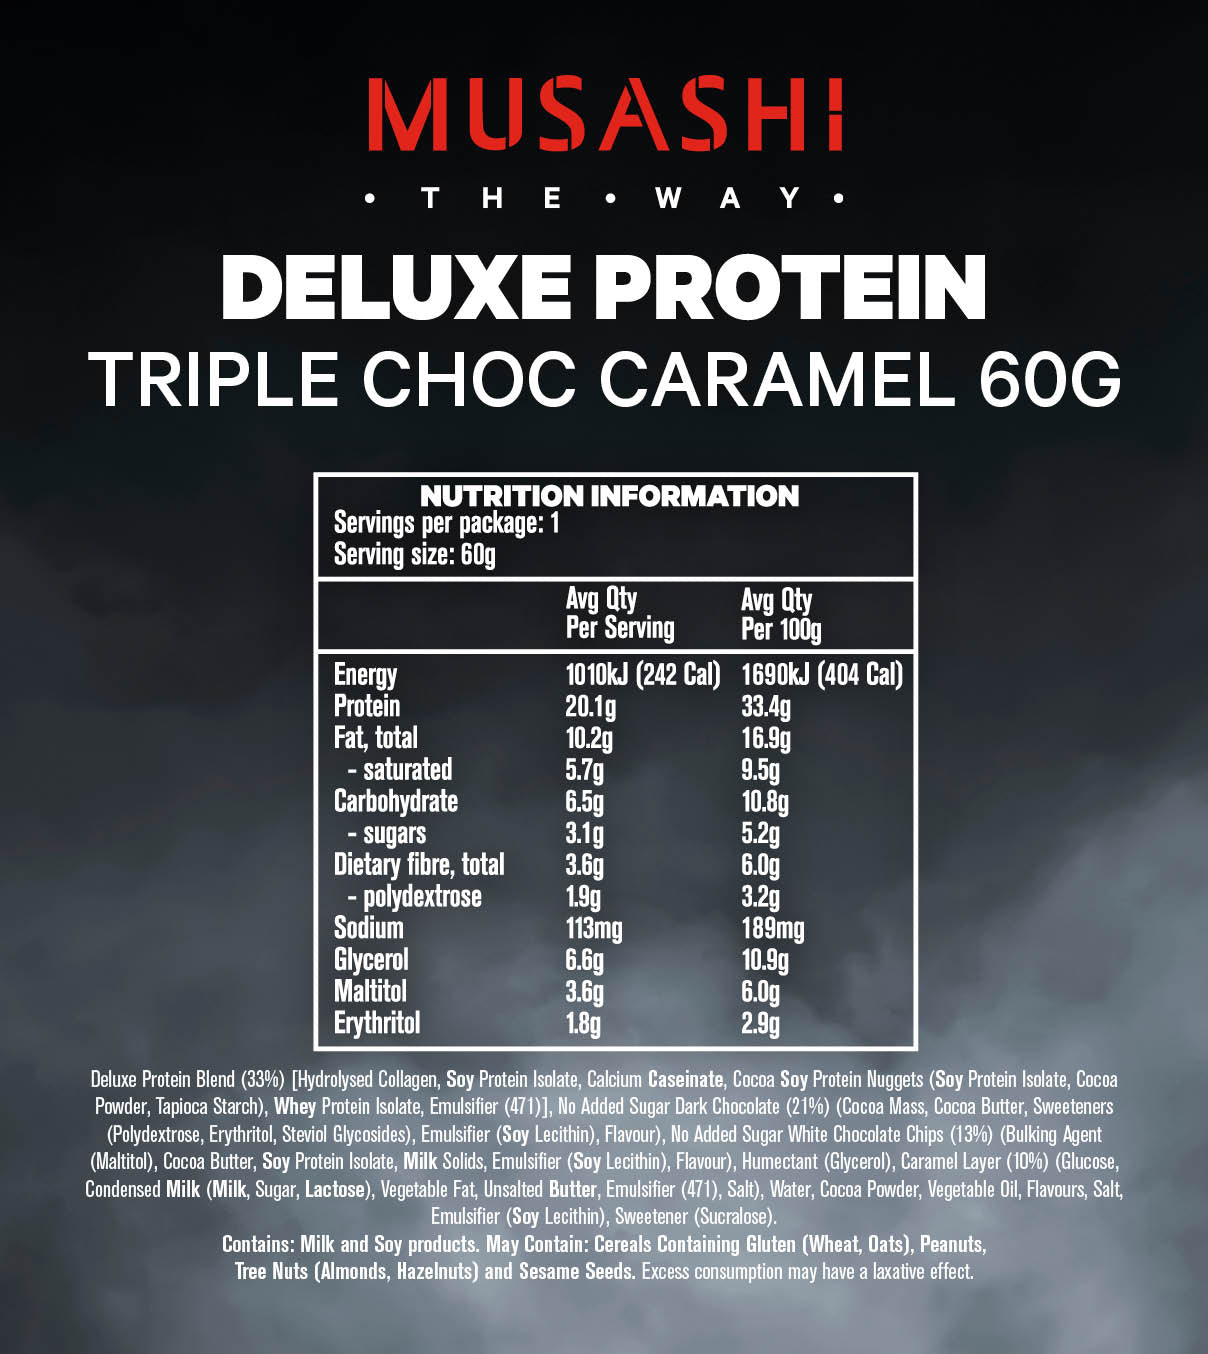 Musashi Deluxe Protein Bar Triple Choc Caramel 60g (Box of 12)